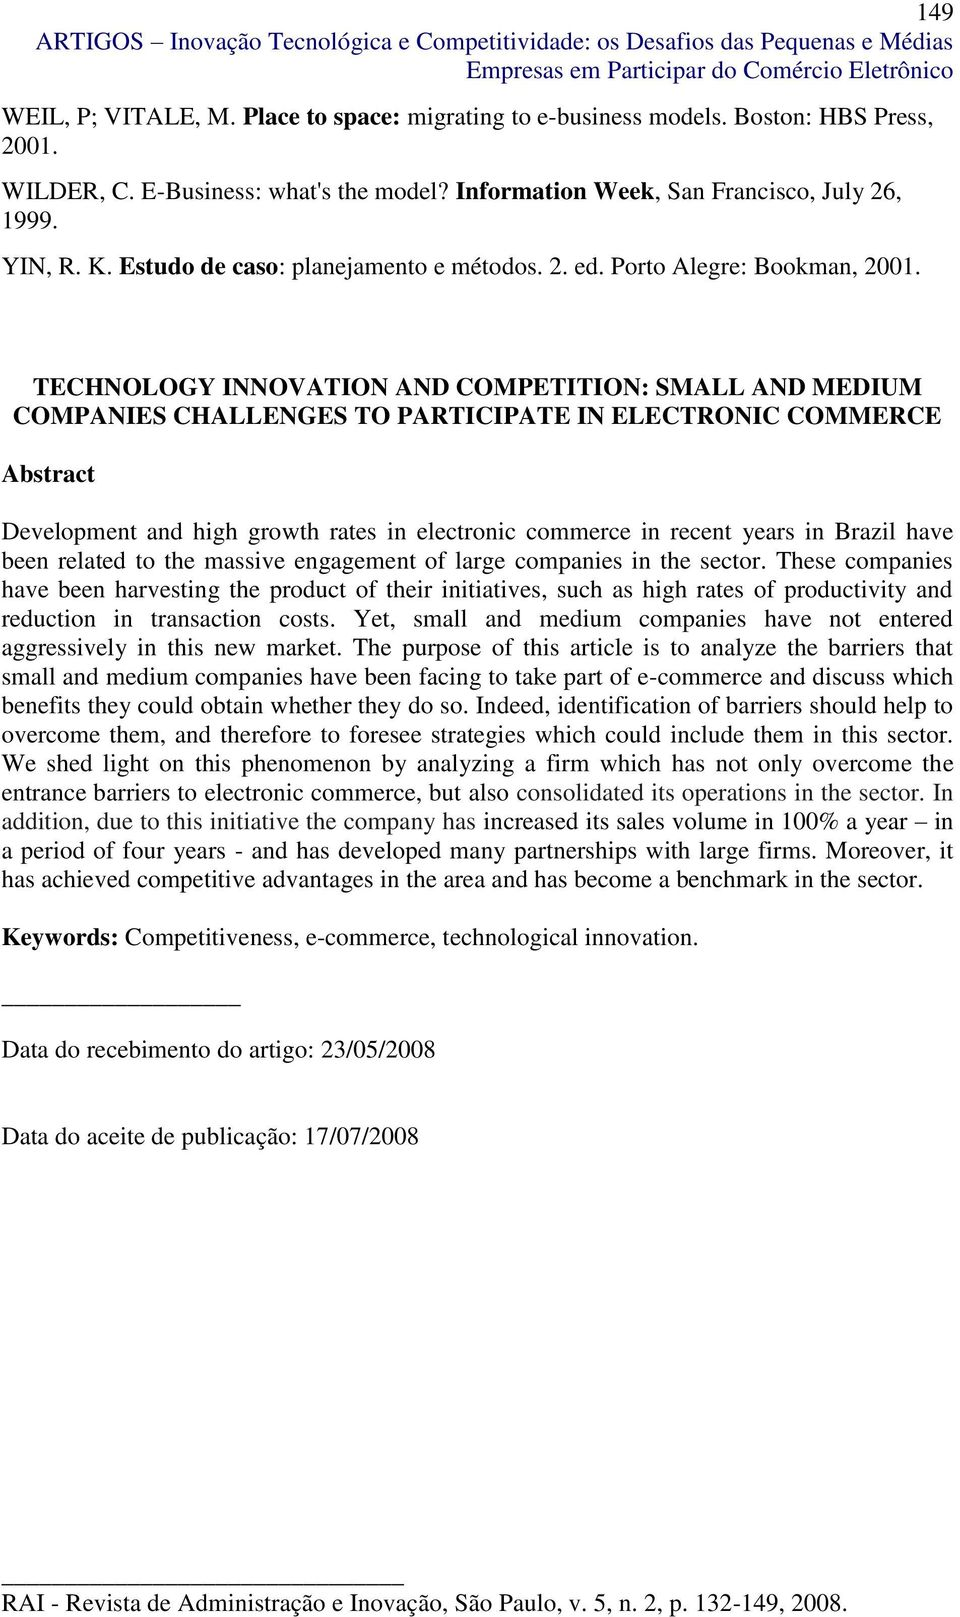 TECHNOLOGY INNOVATION AND COMPETITION: SMALL AND MEDIUM COMPANIES CHALLENGES TO PARTICIPATE IN ELECTRONIC COMMERCE Abstract Development and high growth rates in electronic commerce in recent years in